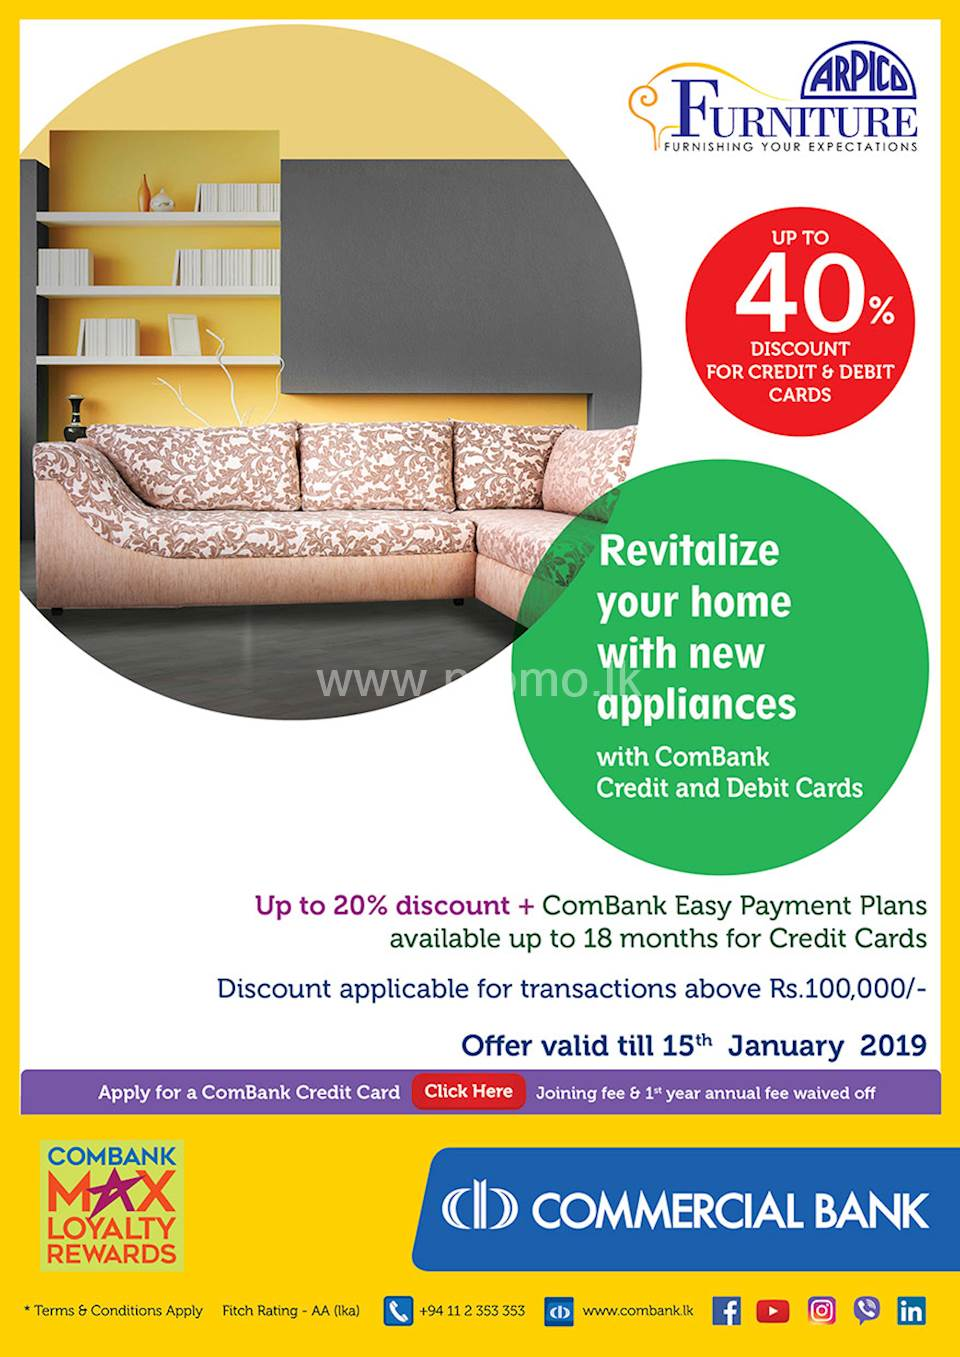 Get up to 40% Discount for Combank Cards at Arpico Furniture